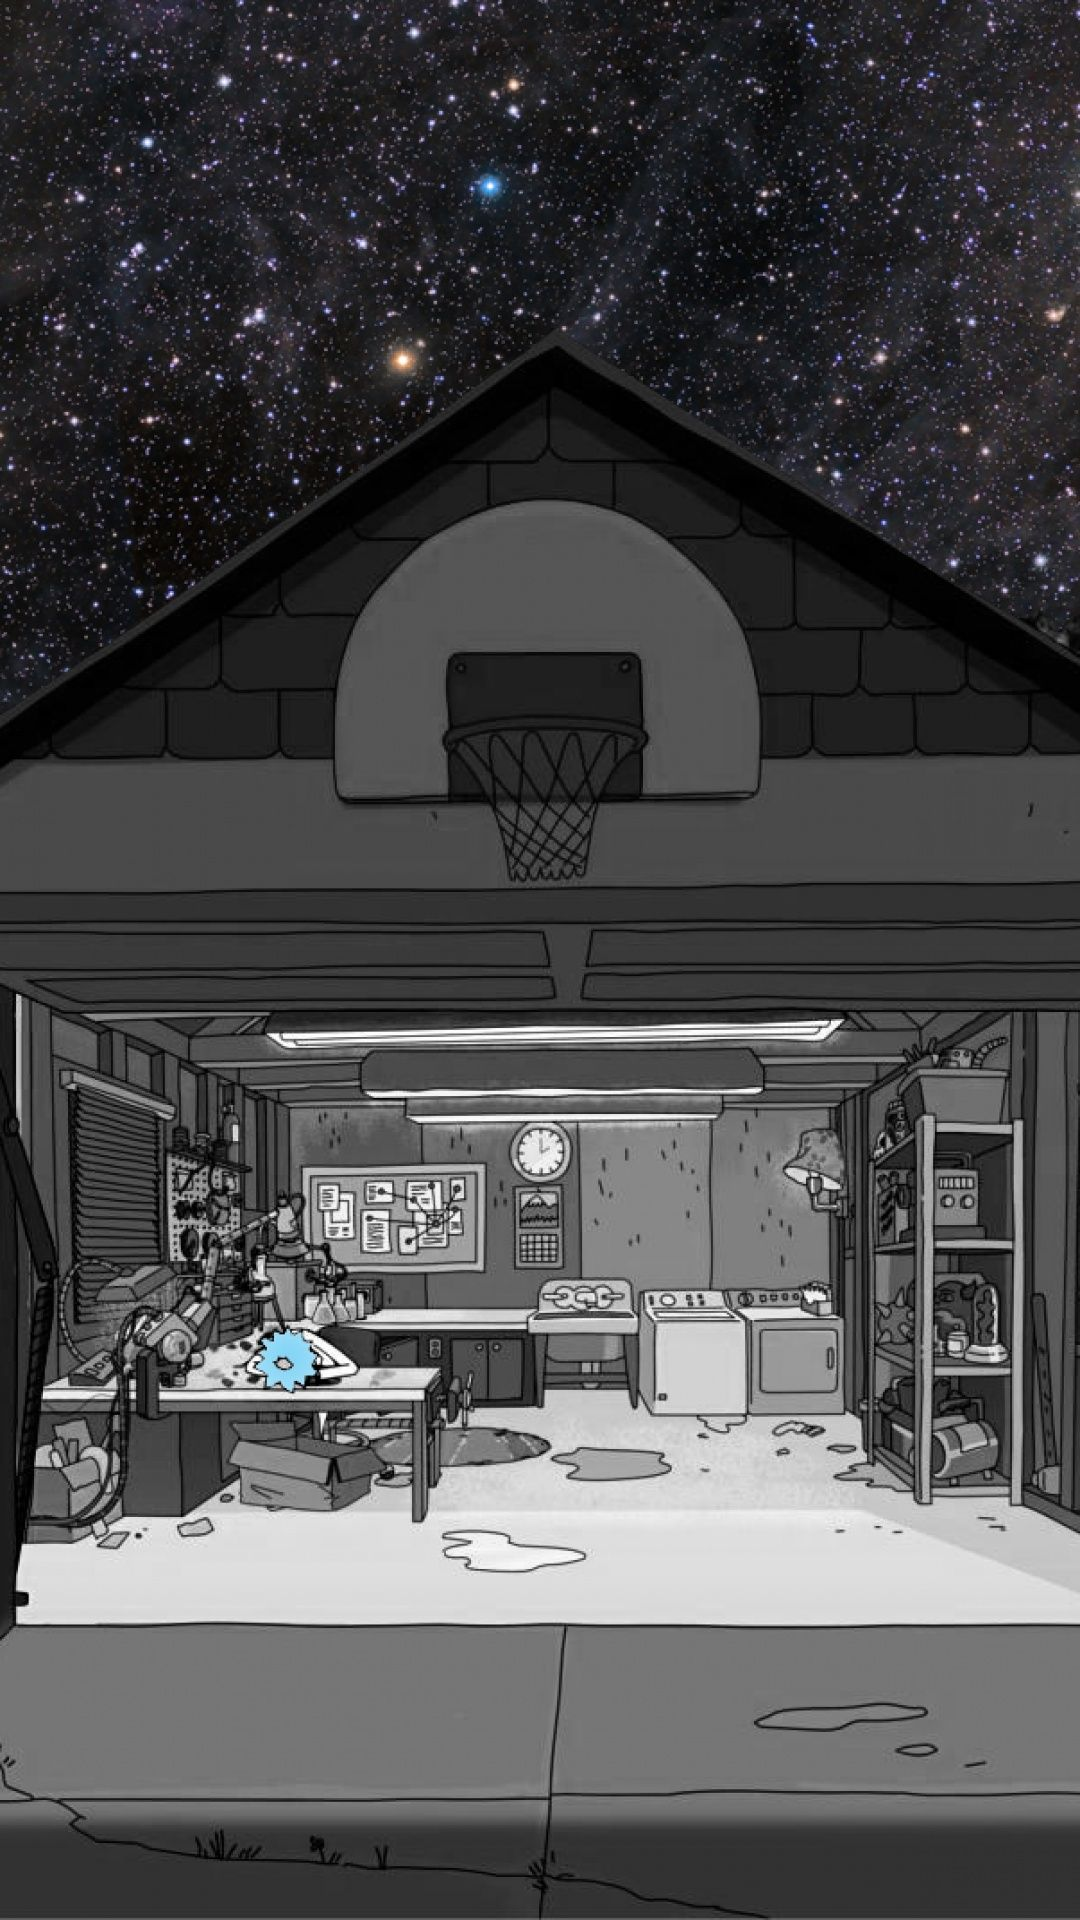 1080x1920 Mobile Phone Rick And Morty 1080×1920 Wallpaper Wpt7807217 ...